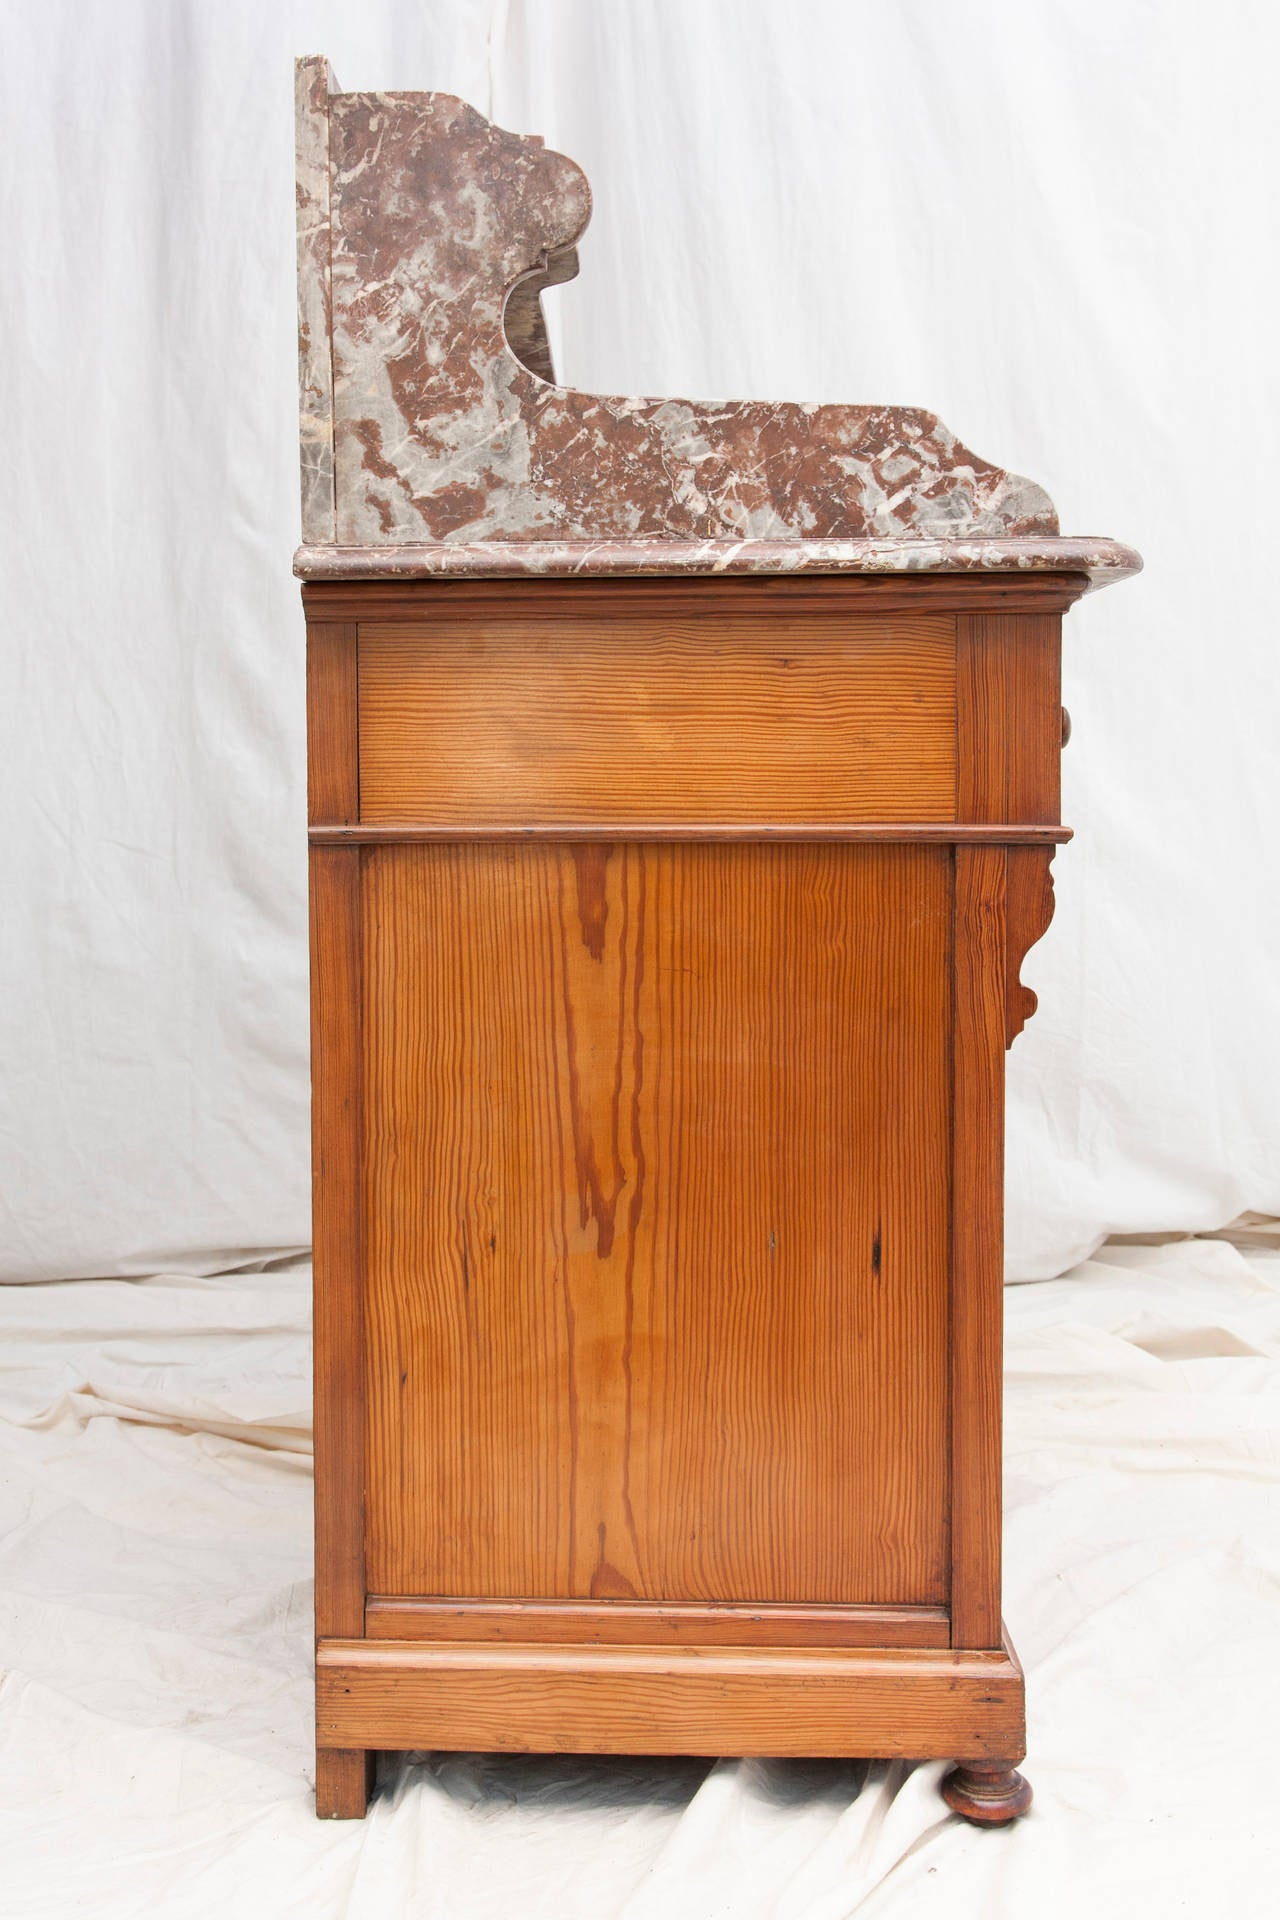 Antique French Vanity Cabinet with Marble Top and Porcelain Swivel Sink 3 - Antique French Vanity Cabinet With Marble Top And Porcelain Swivel